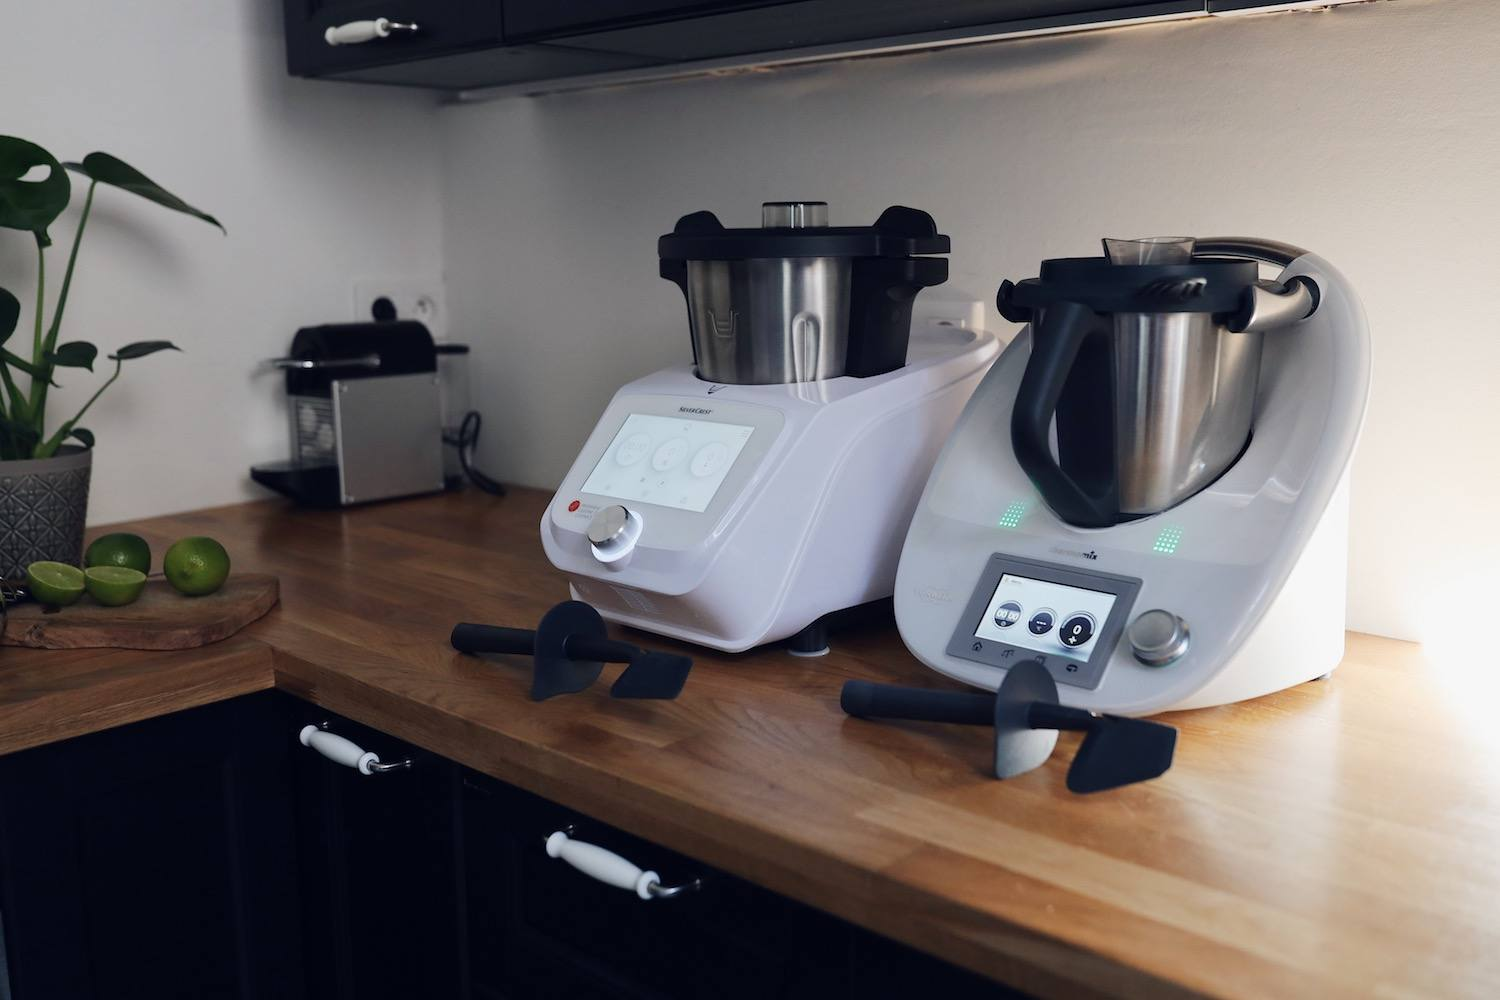 monsieur cuisine connect lidl vs thermomix nolwenn c blog nantes